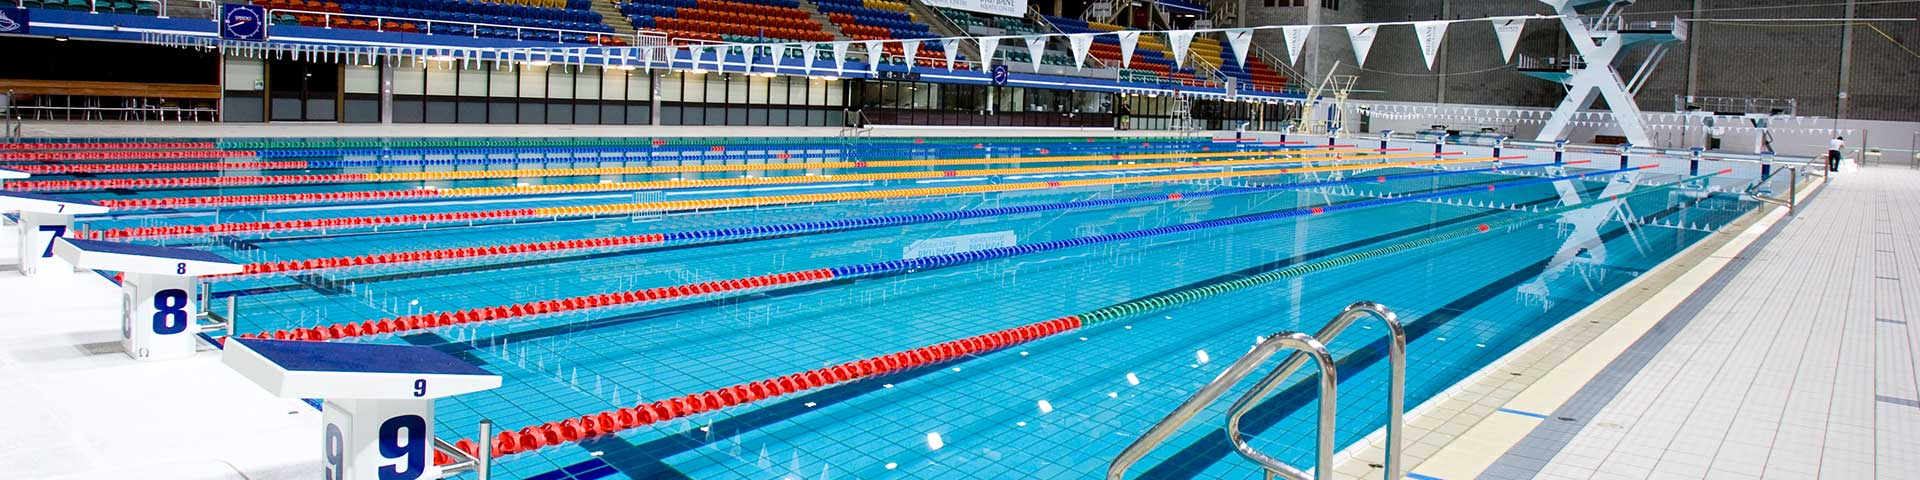 Sleeman Sports Complex Aquatic Centre